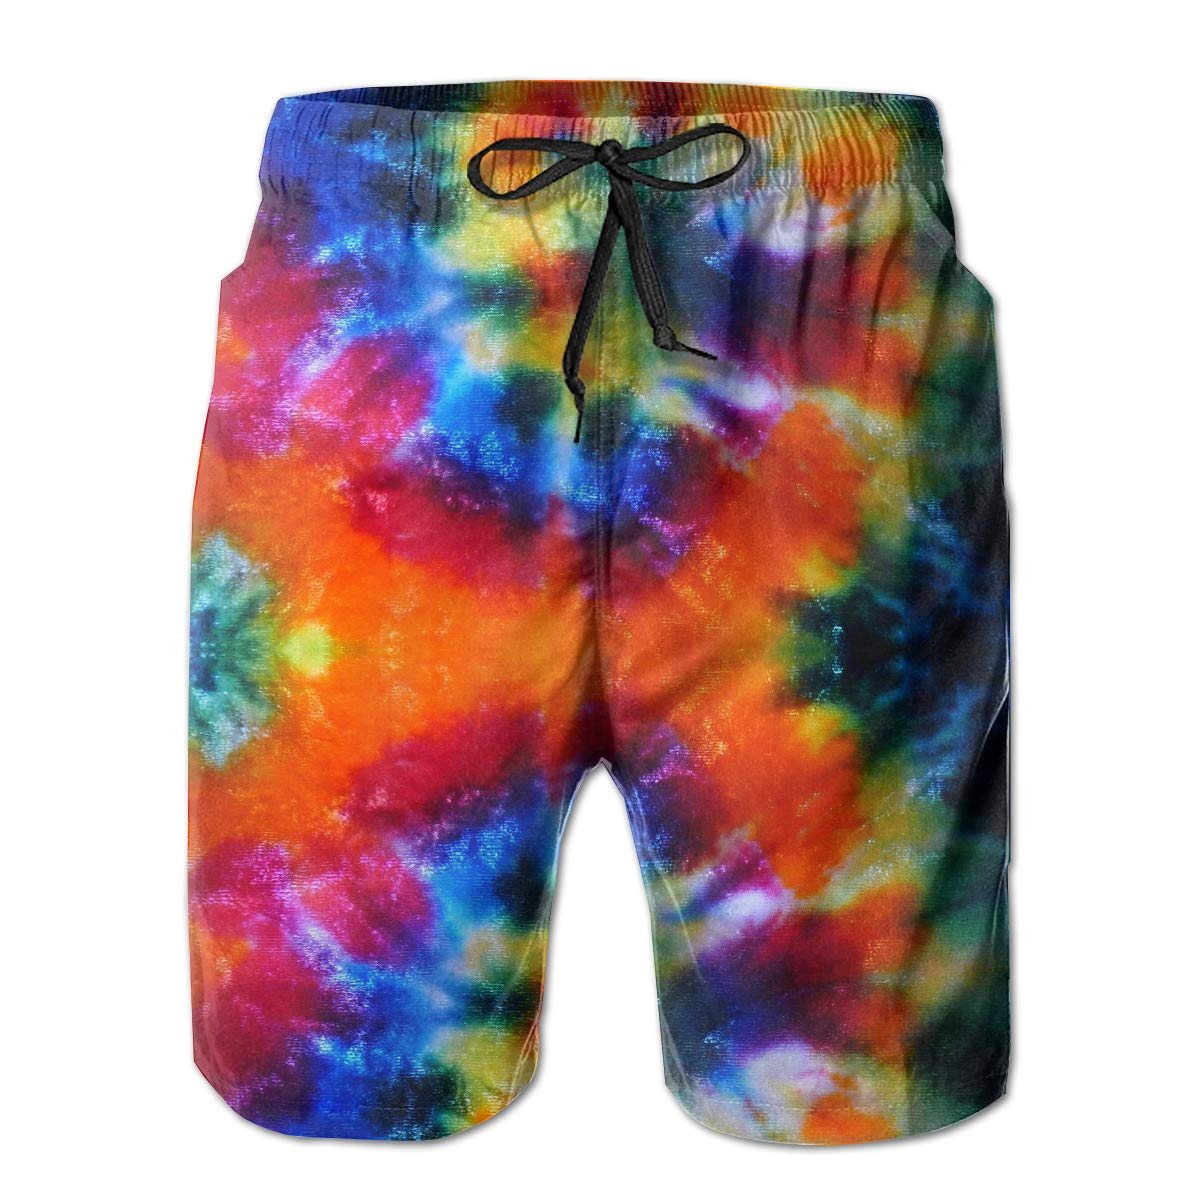 Mens Quick Dry Swim Trunks Tie-Dye Board Shorts with Mesh Lining